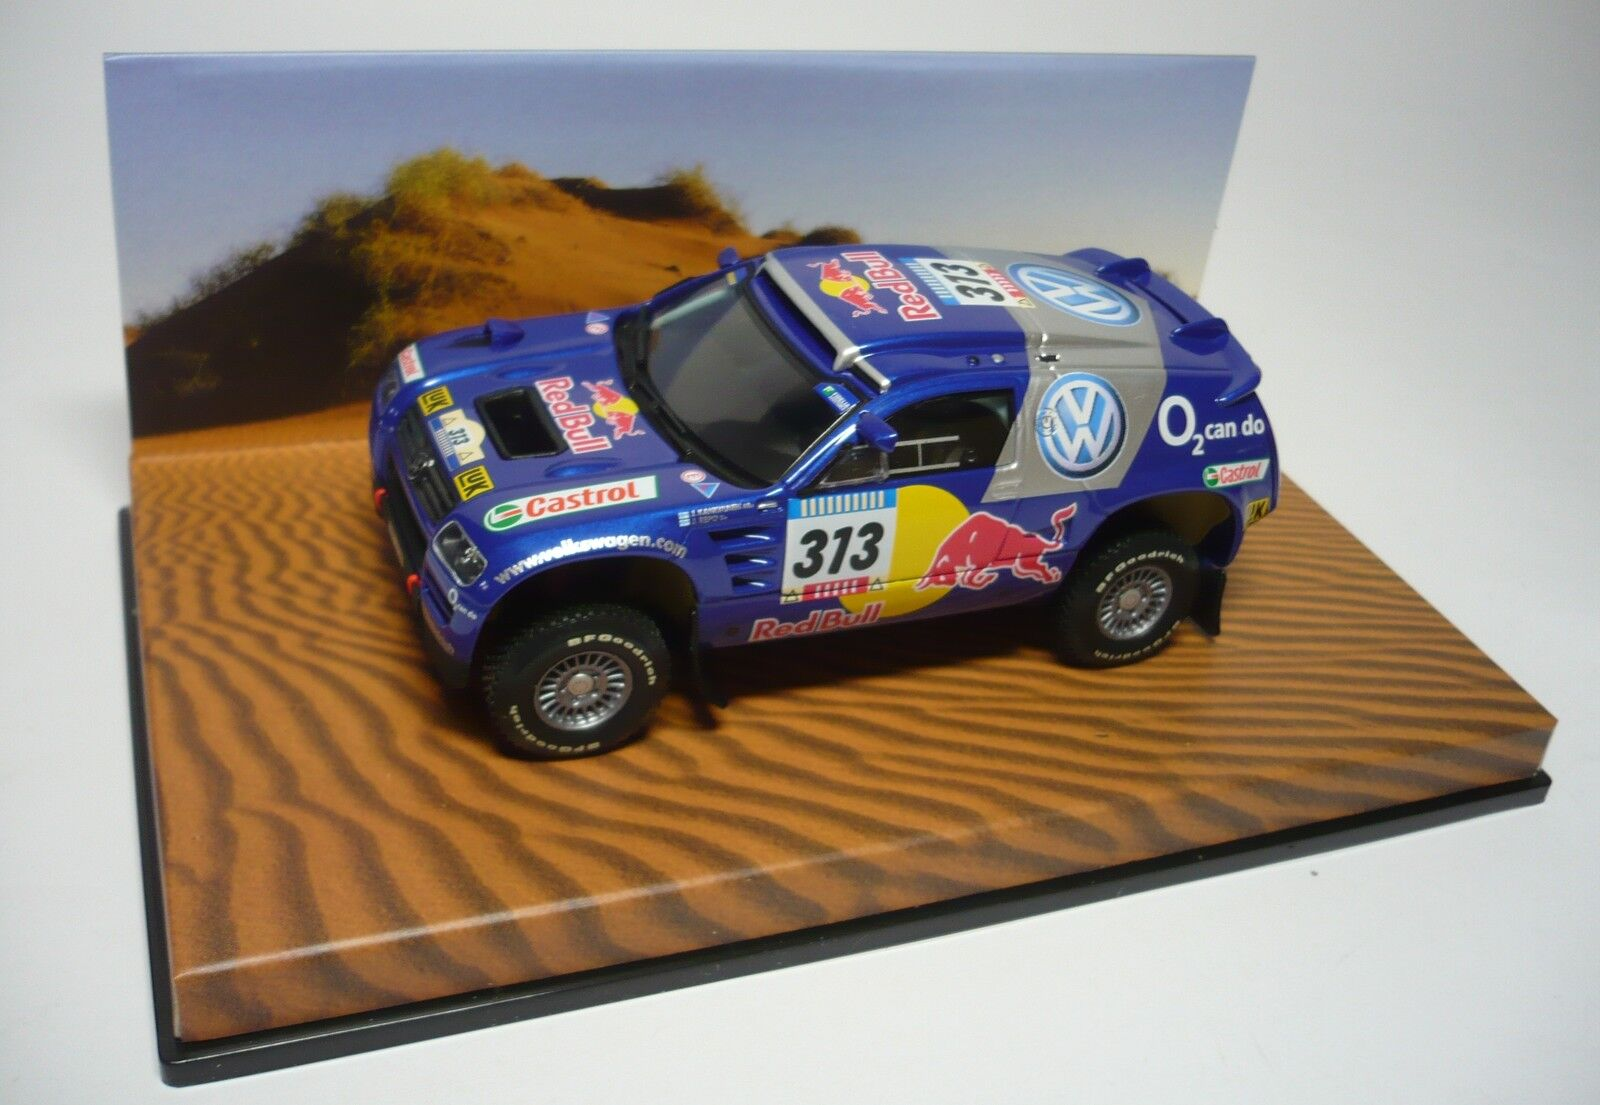 VW RACE TOUAREG  313 PARIS DAKAR 2005 1 43 MINICHAMPS